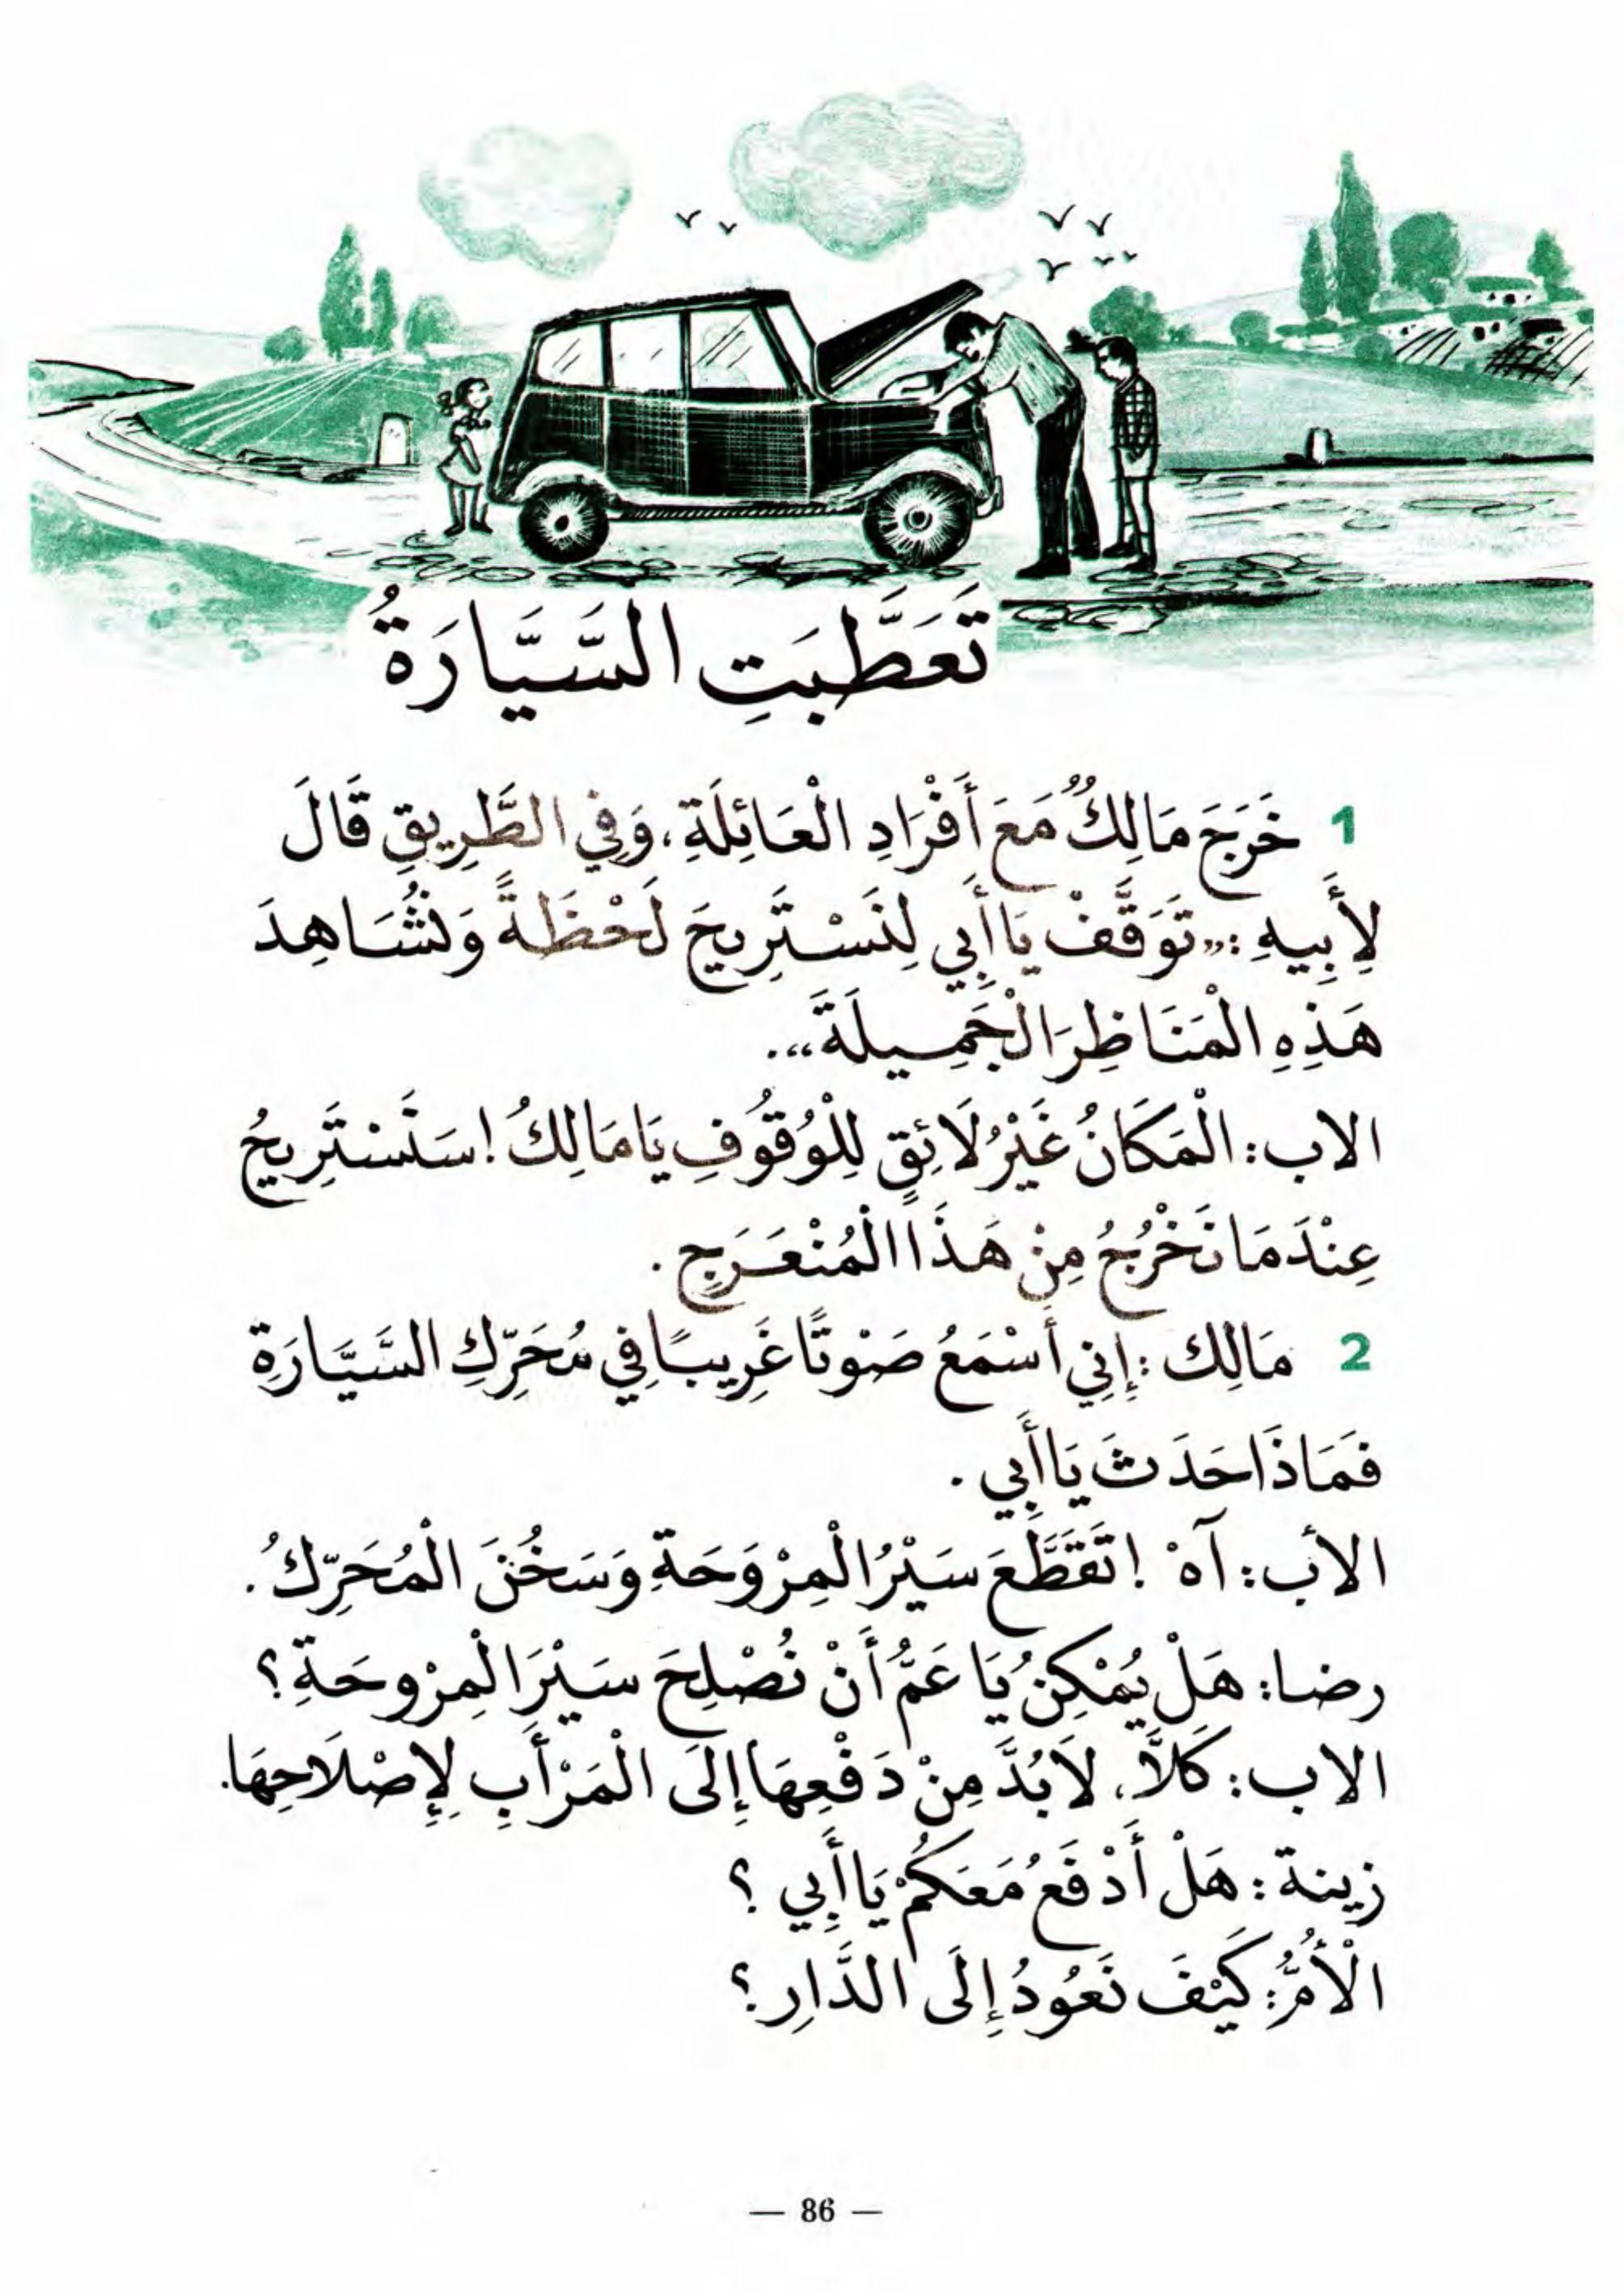 Https Archive Org Details Kitabifialqeraa Page N81 Mode 2up Arabic Lessons Internet Archive Language